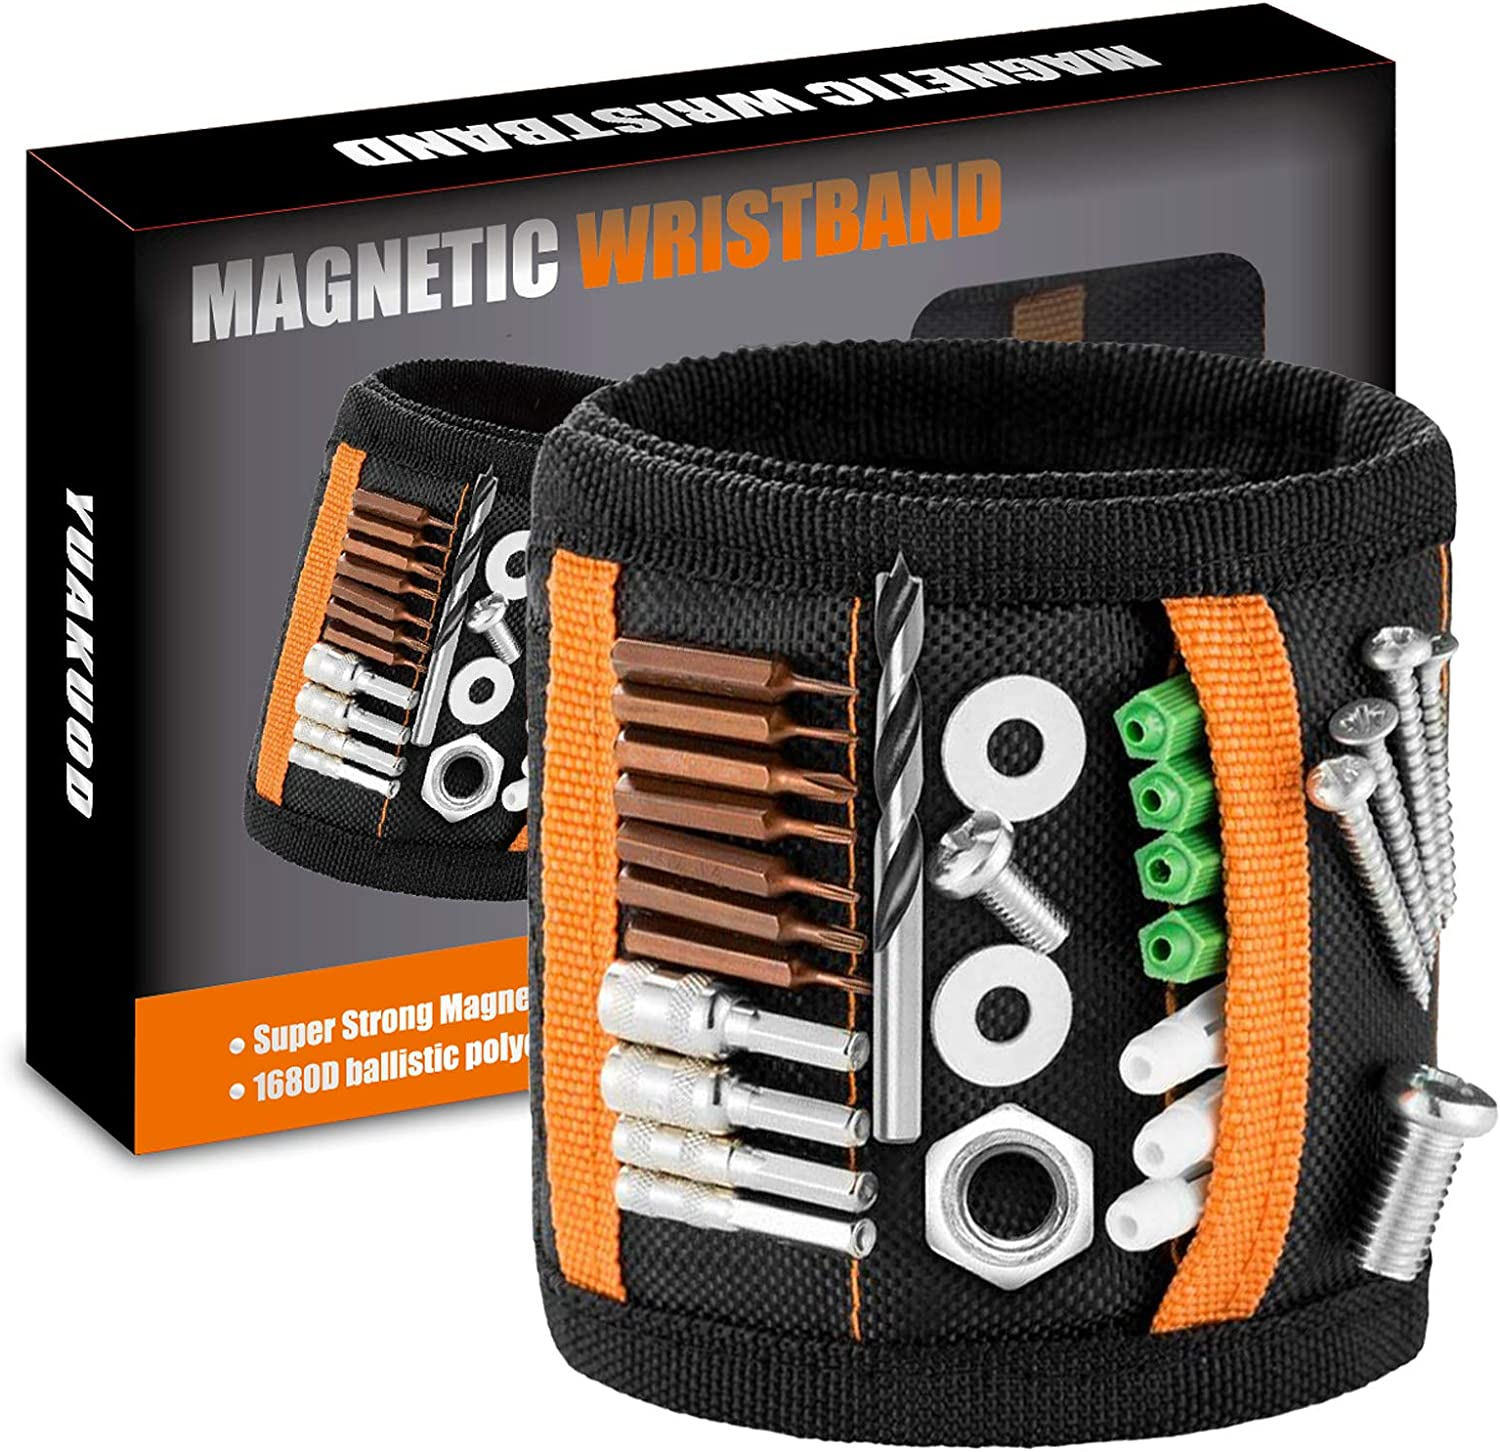 Magnetic Wristband Tools Tool Max 50% OFF Belt With H Magnets Overseas parallel import regular item for 20 Strong